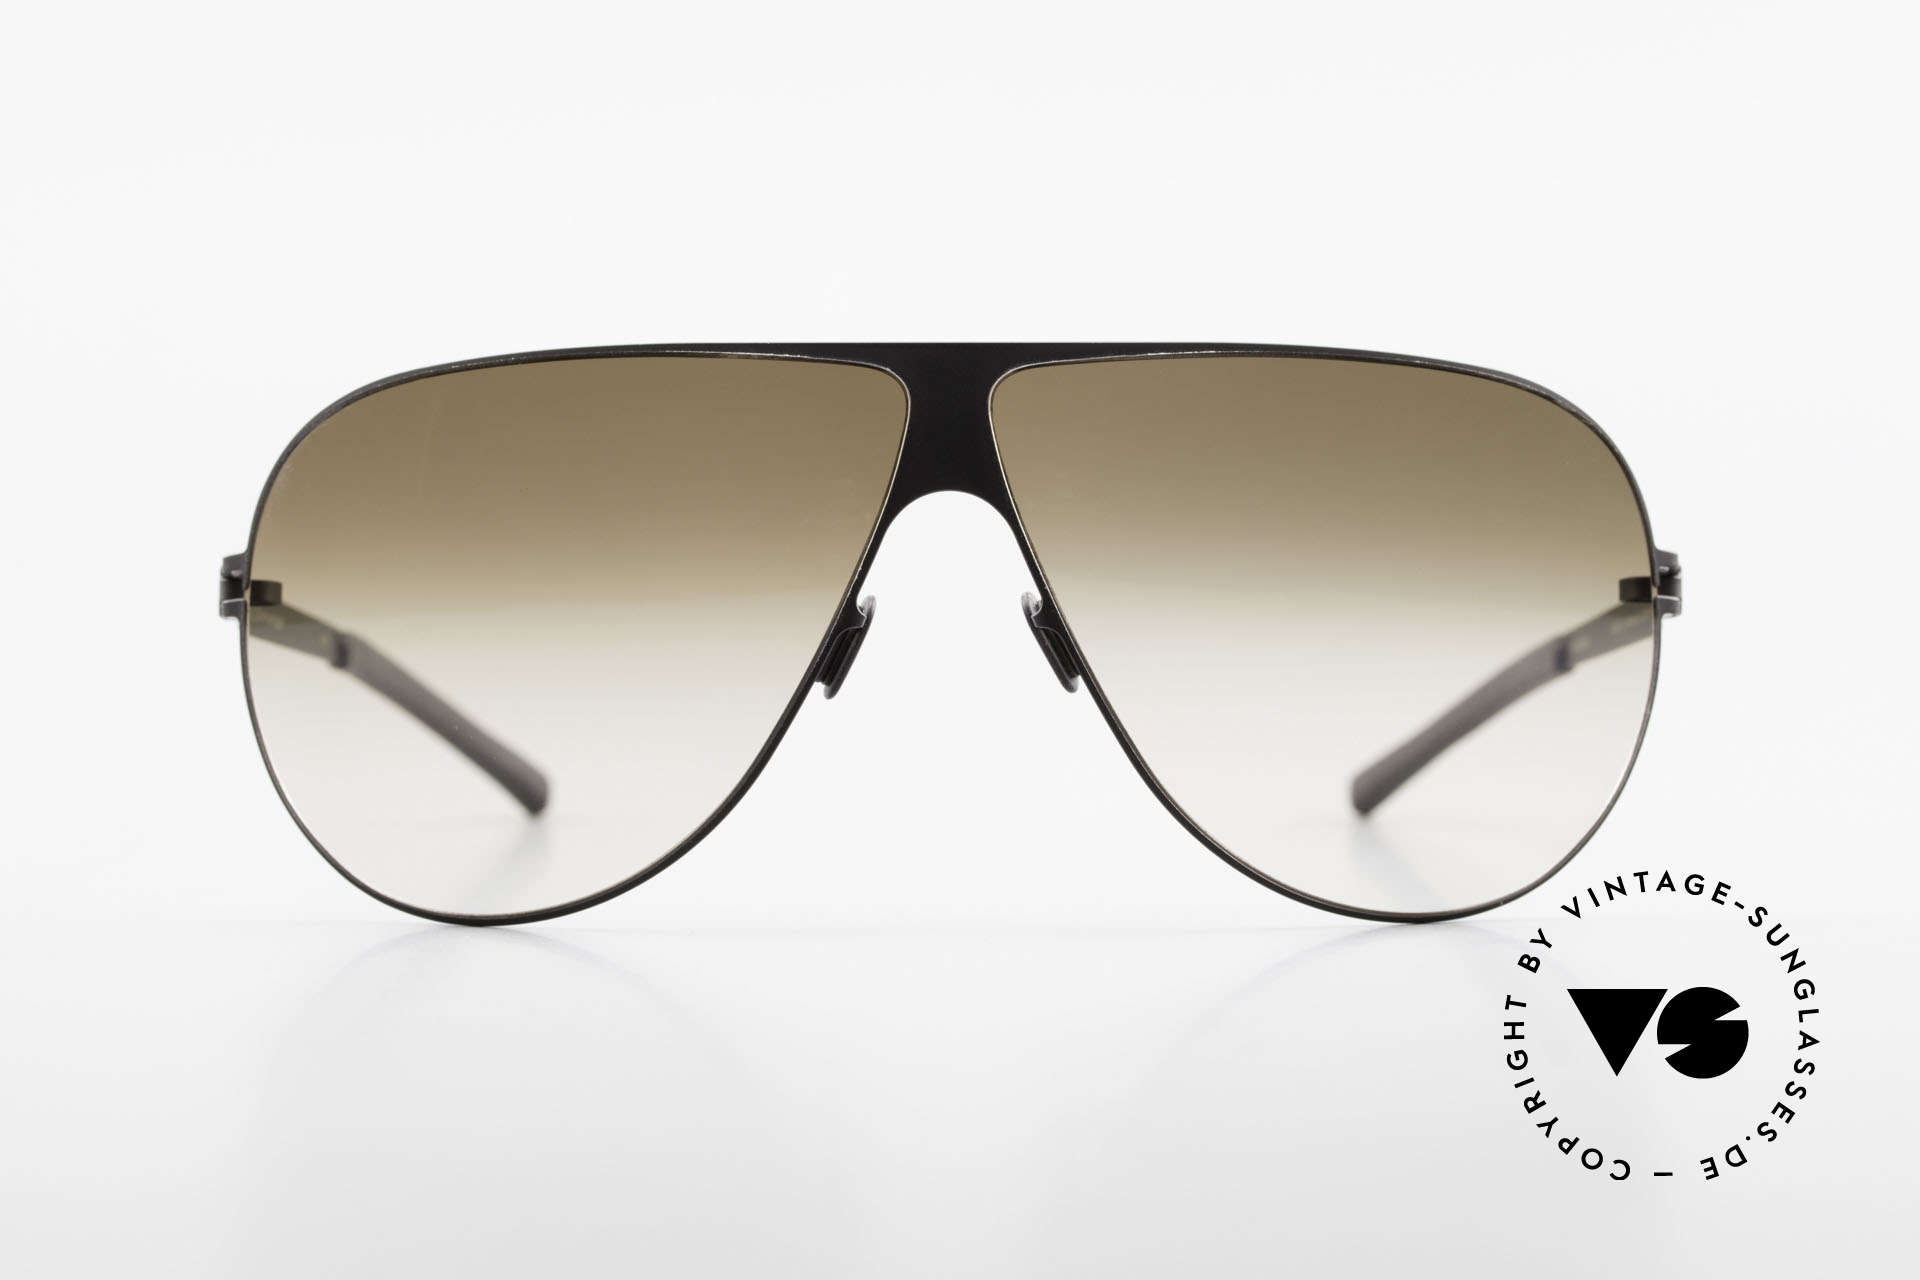 Mykita Elliot Mykita Tom Cruise Sunglasses, MYKITA: the youngest brand in our vintage collection, Made for Men